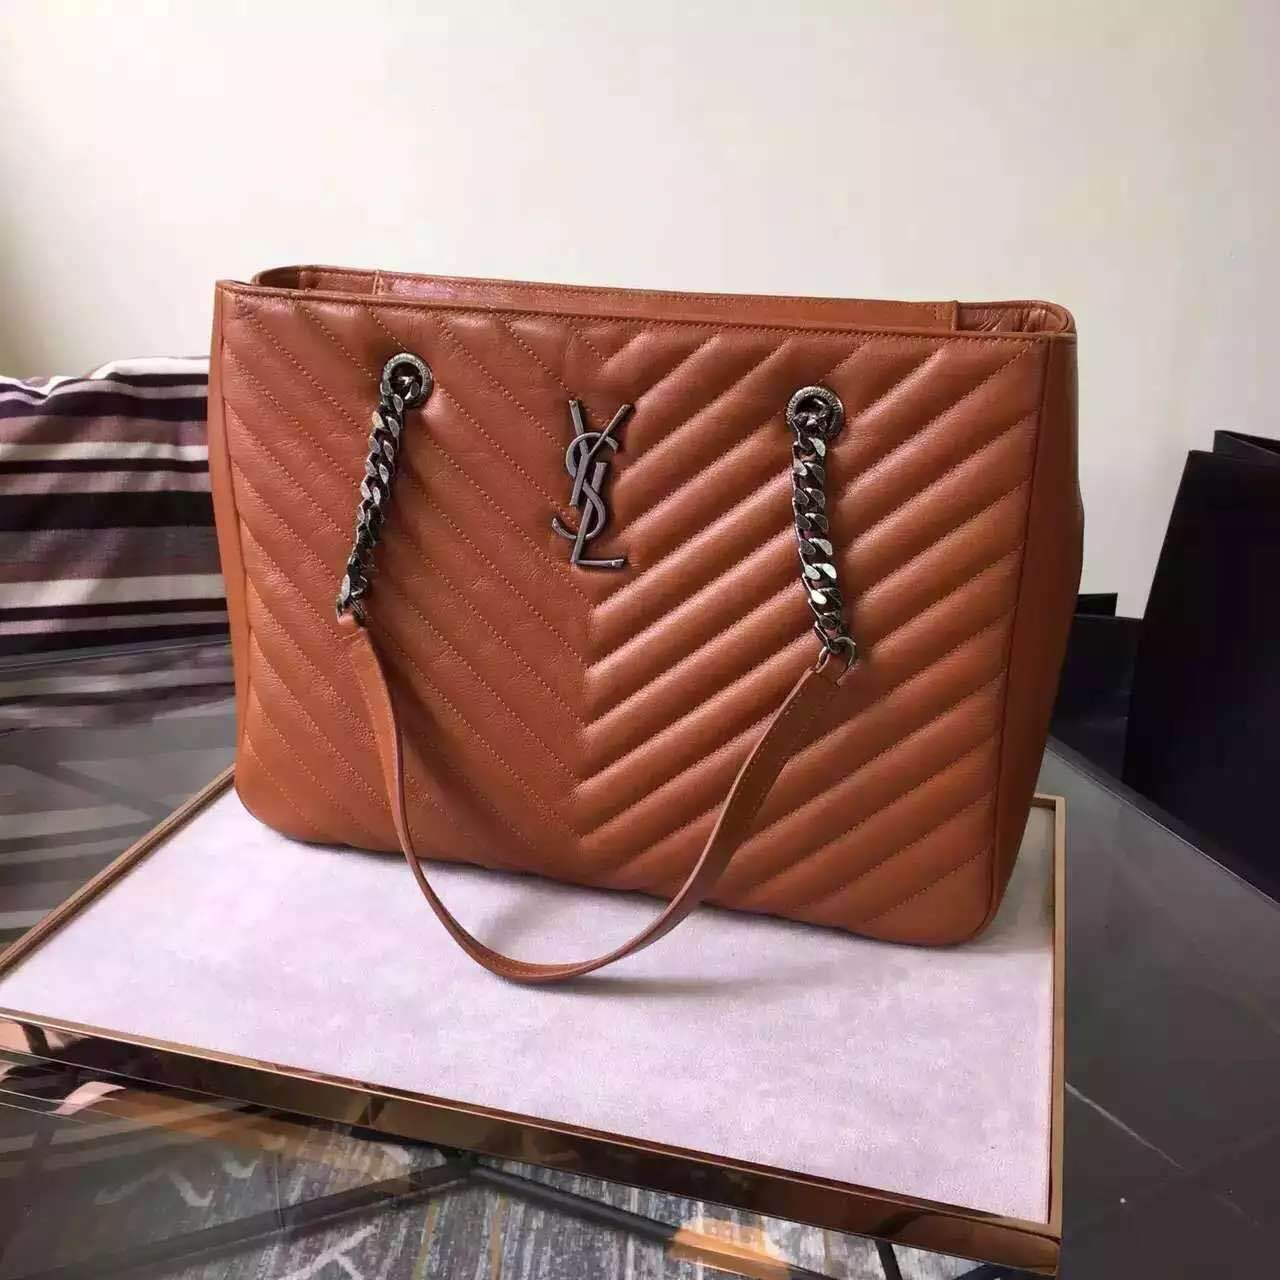 New Arrival!2016 Cheap YSL Out Sale with Free Shipping-Saint Laurent Classic Monogram Shopping Bag in Camel MATELASSÉ Leather